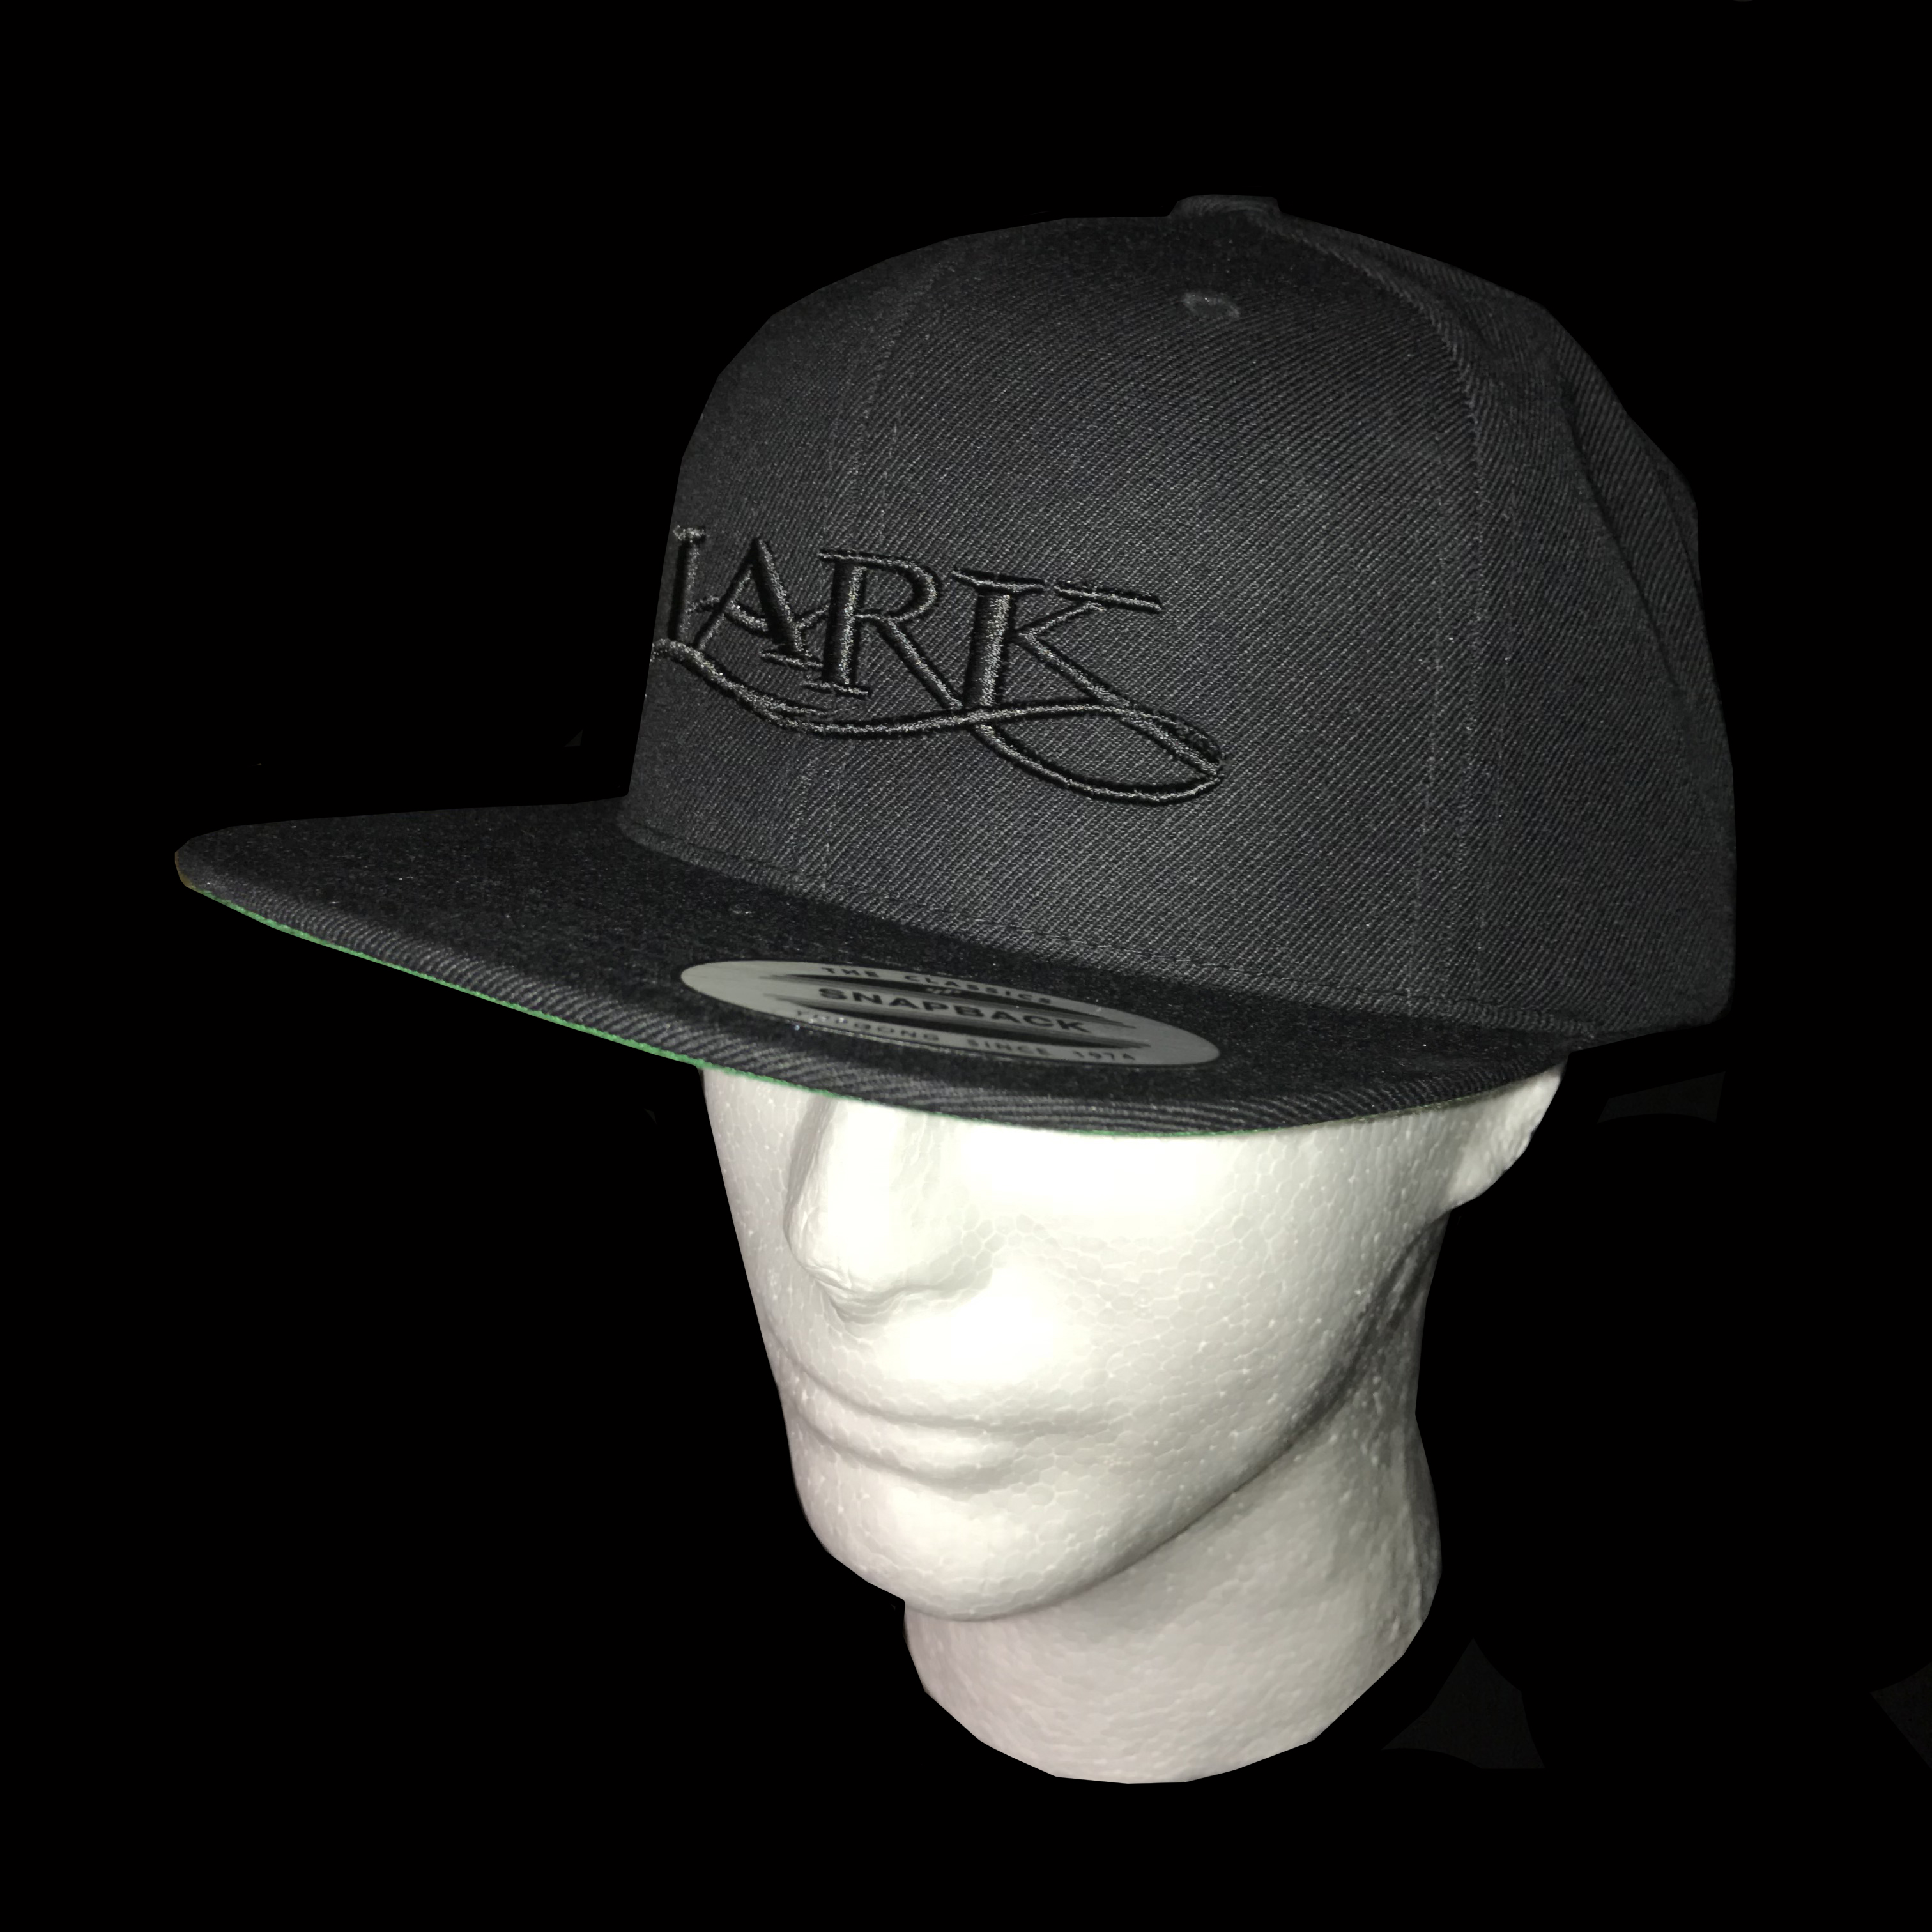 8053ce524 $25.00: Lark Fancy Lettering on Snapback Baseball Cap - Colors: black  embroidery on black colored hat